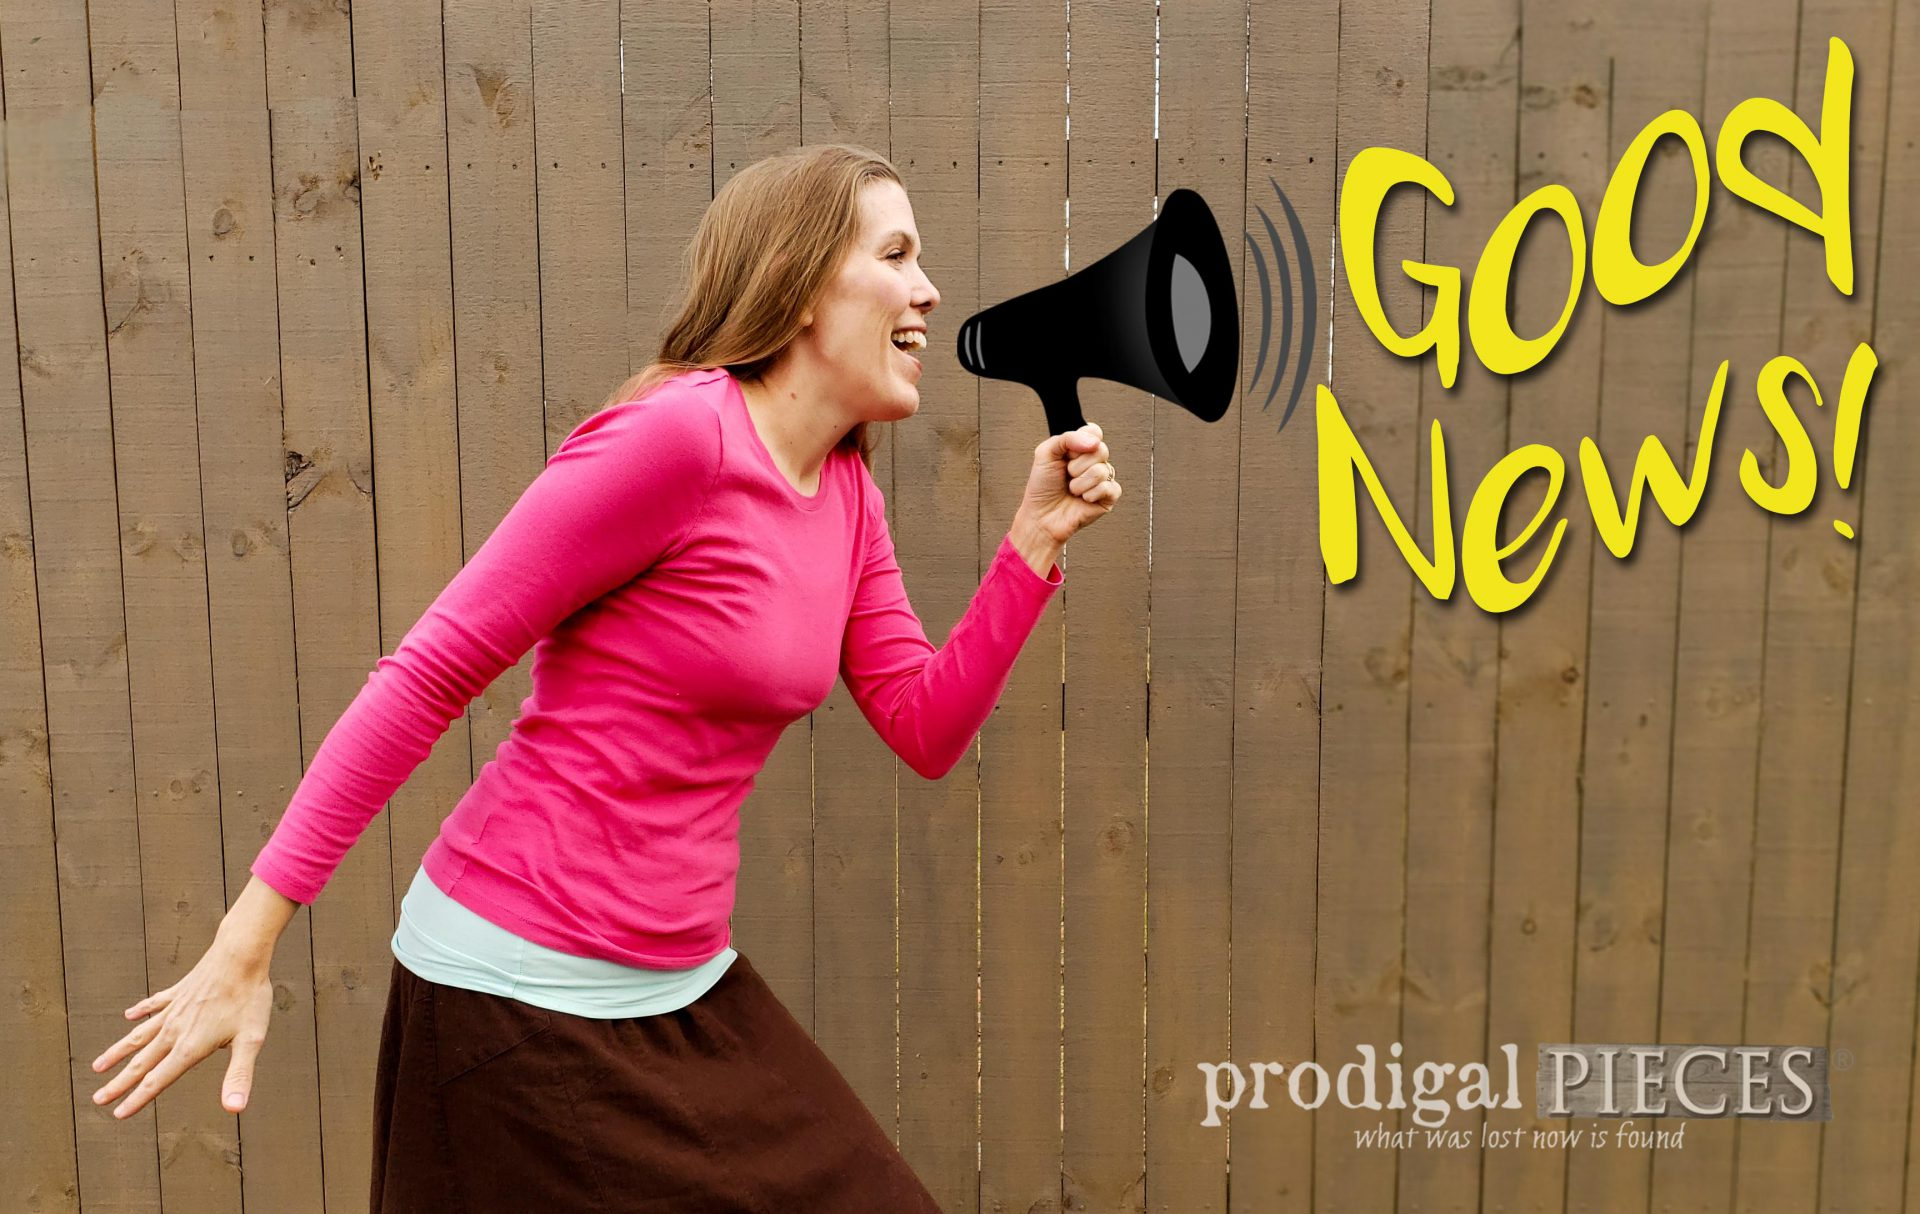 Have you hear the good news! It's so good, you'll want to share it! Larissa of Prodigal Pieces Speaking the Truth | prodigalpieces.com #prodigalpieces #goodnews #faith #life